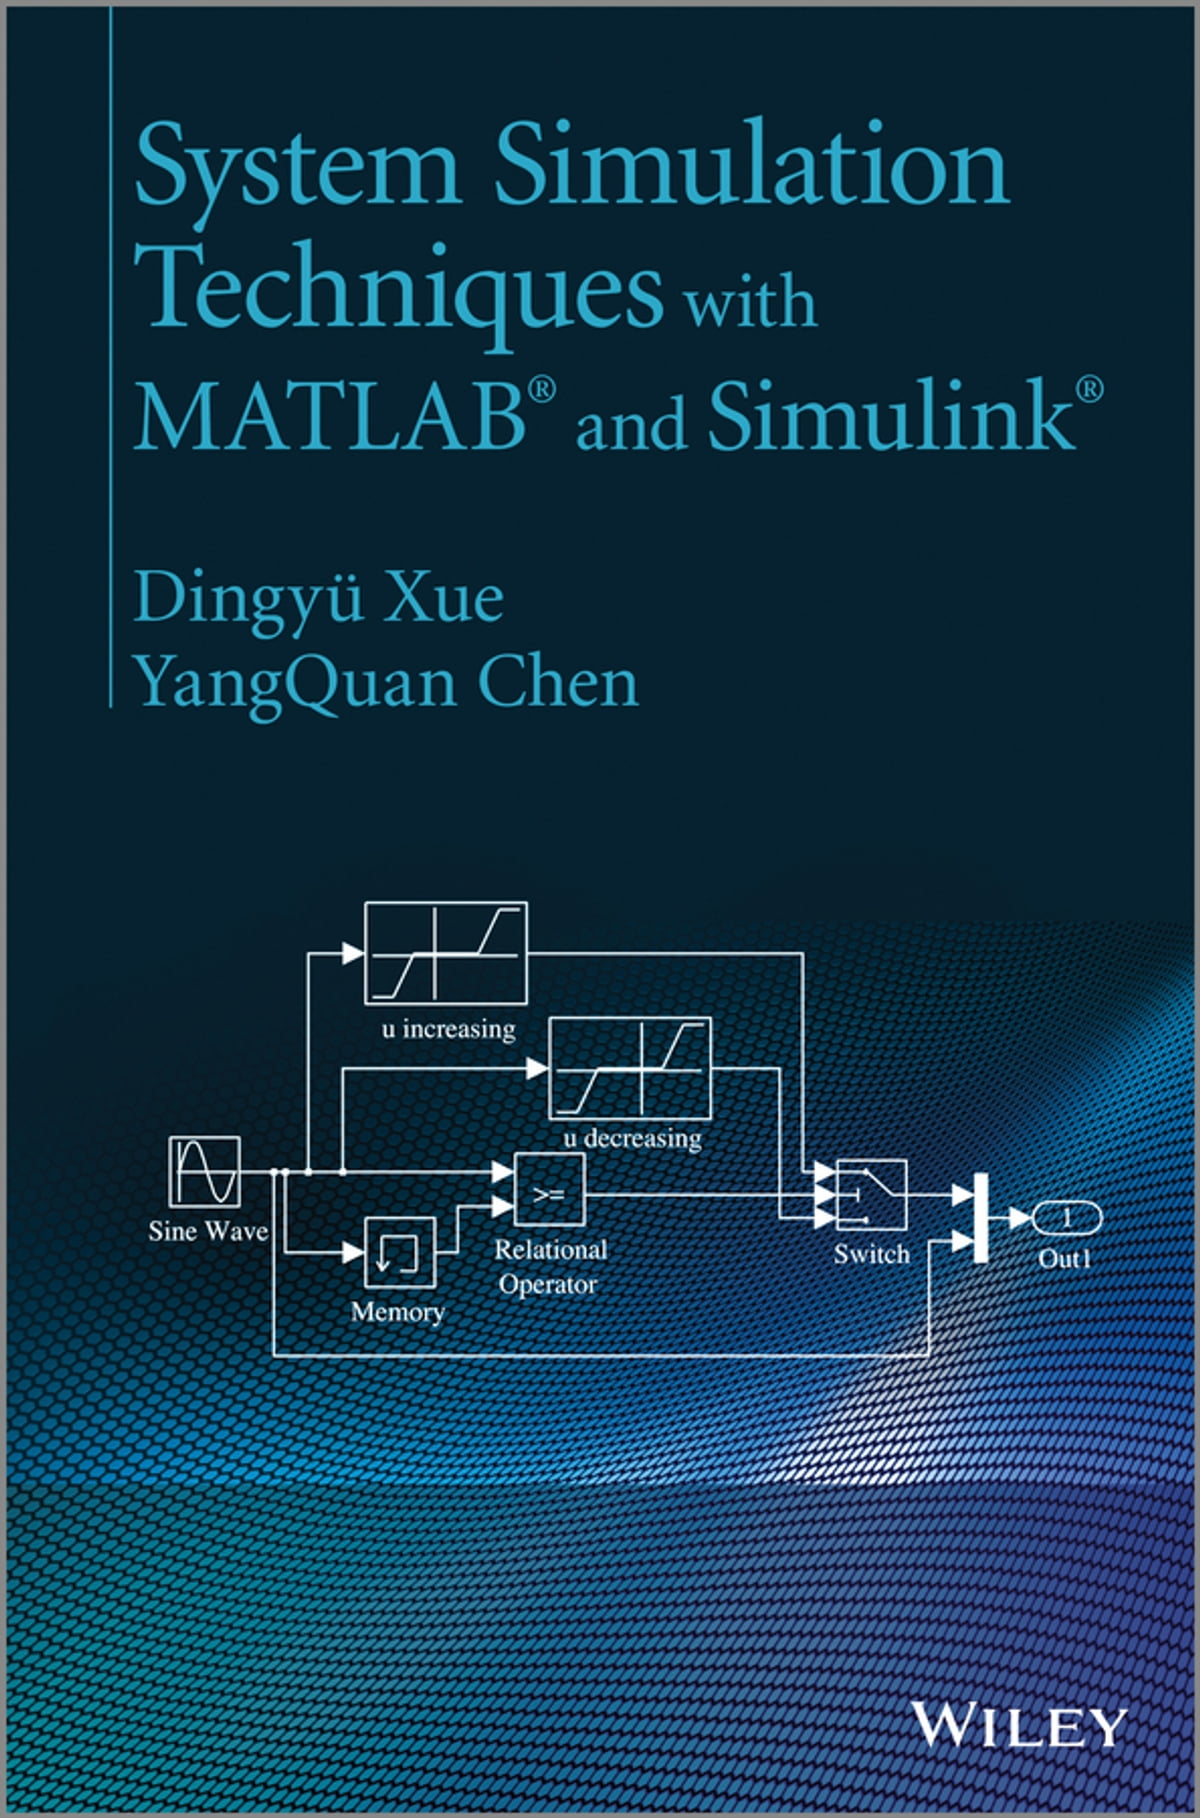 System Simulation Techniques with MATLAB and Simulink eBook by Dingyü Xue -  9781118694374 | Rakuten Kobo